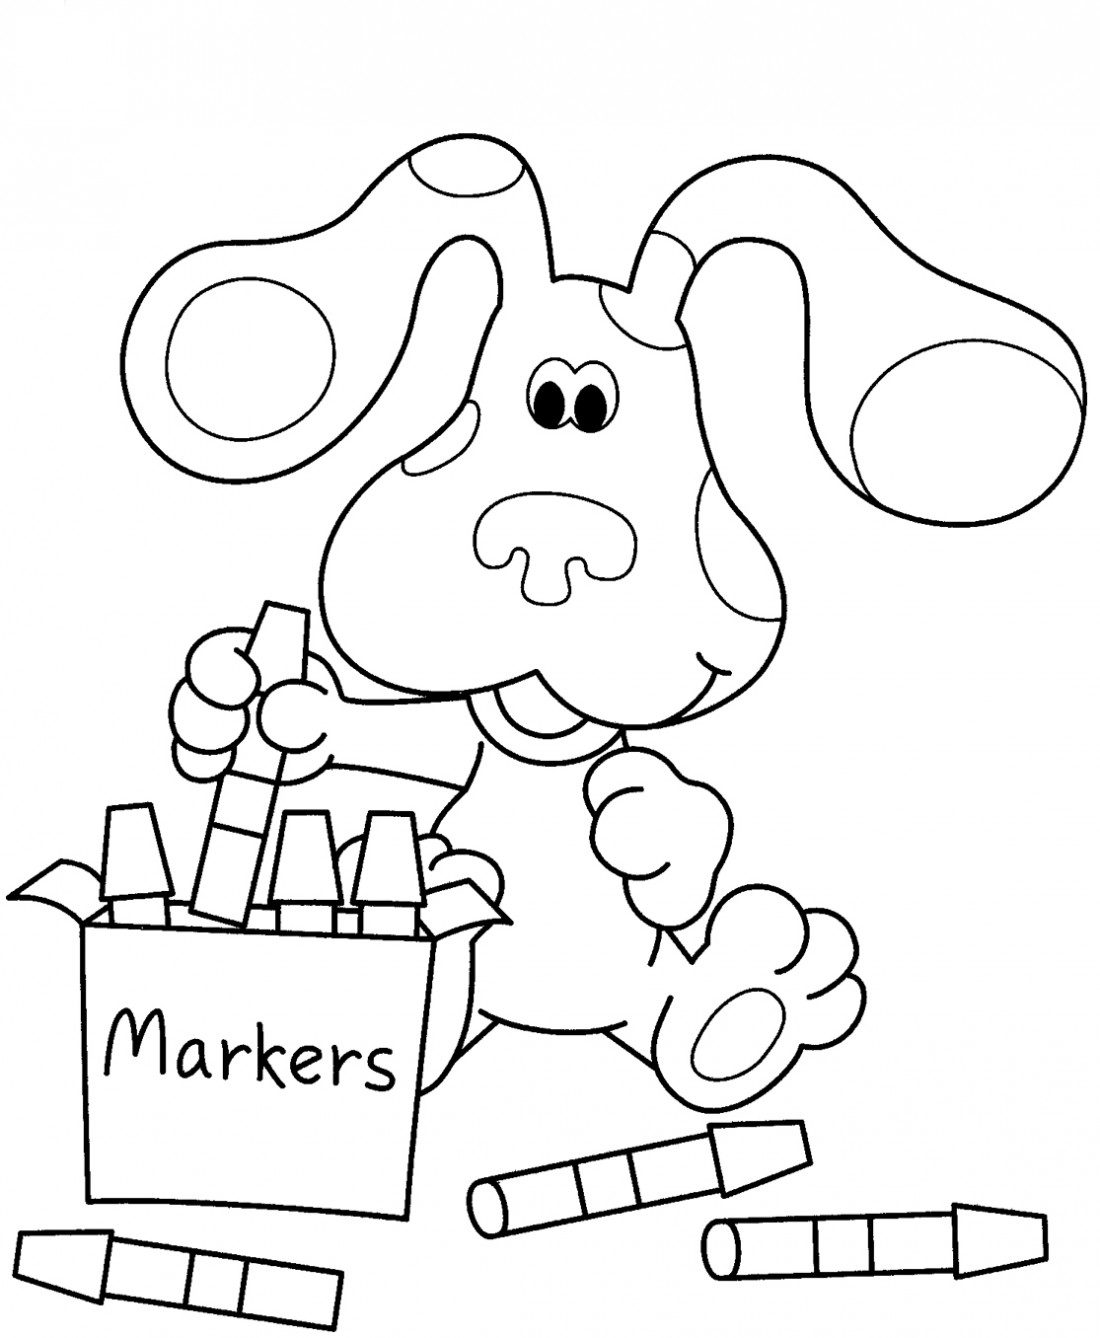 coloring with crayons box crayons coloring pages for kids best place to color coloring with crayons